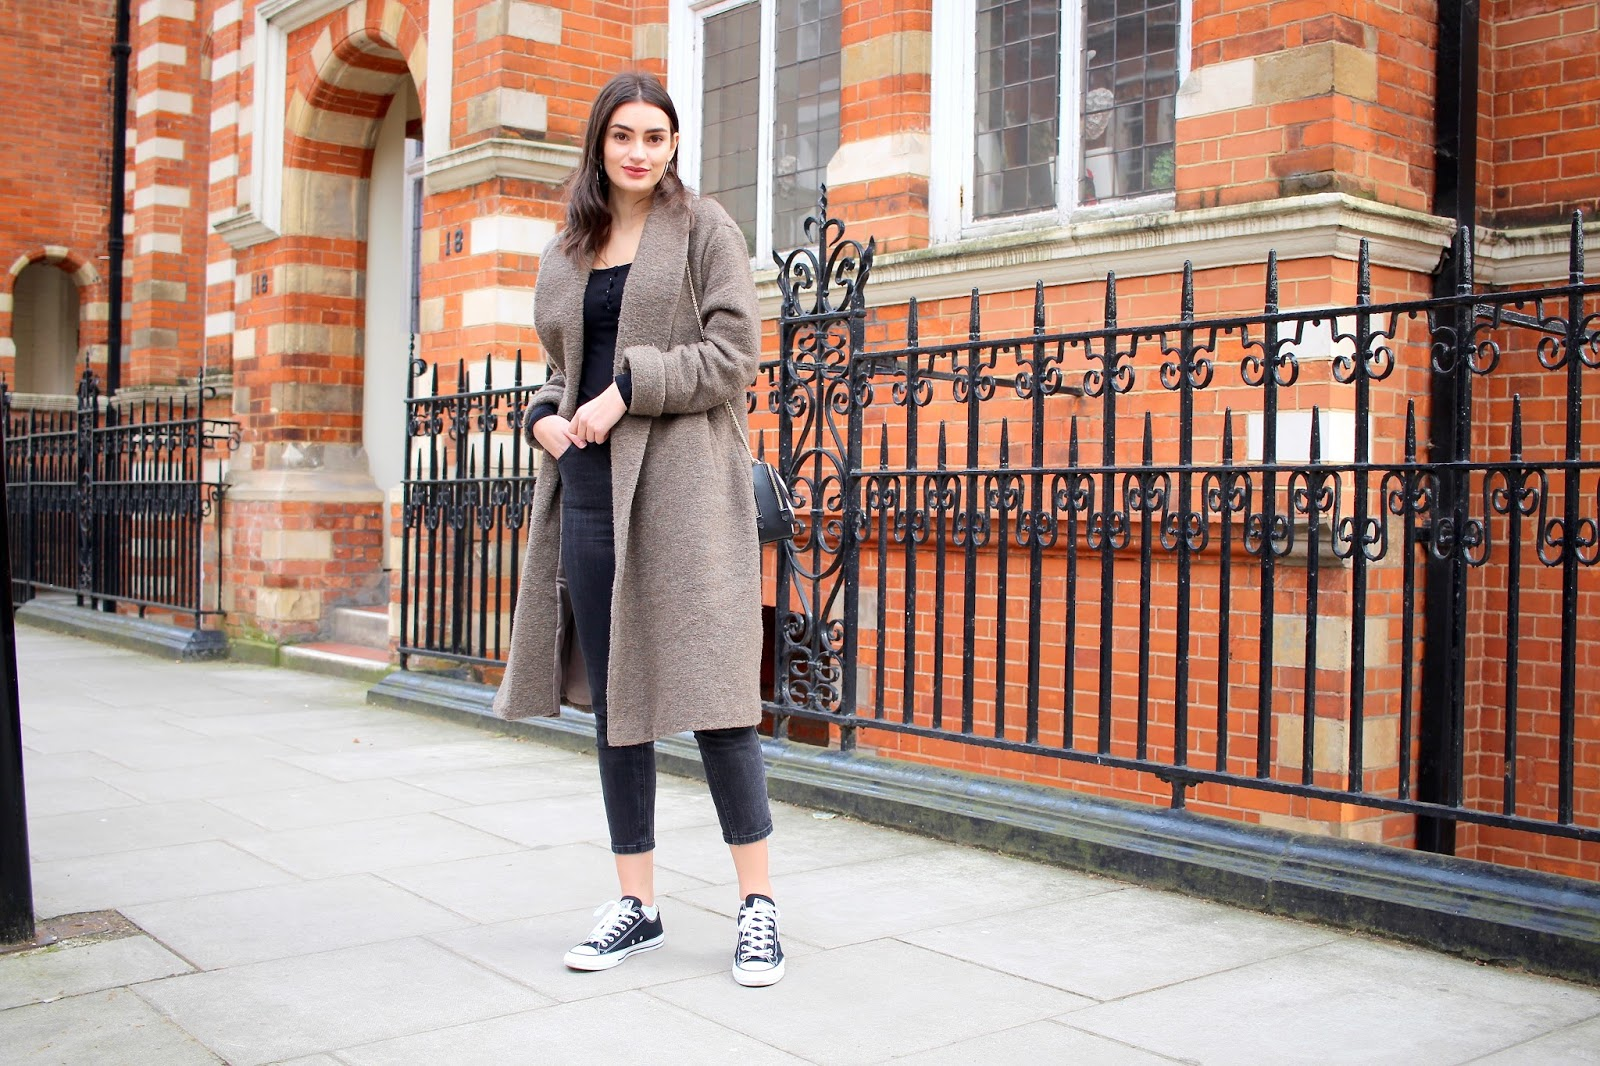 london blog peexo fashion personal style